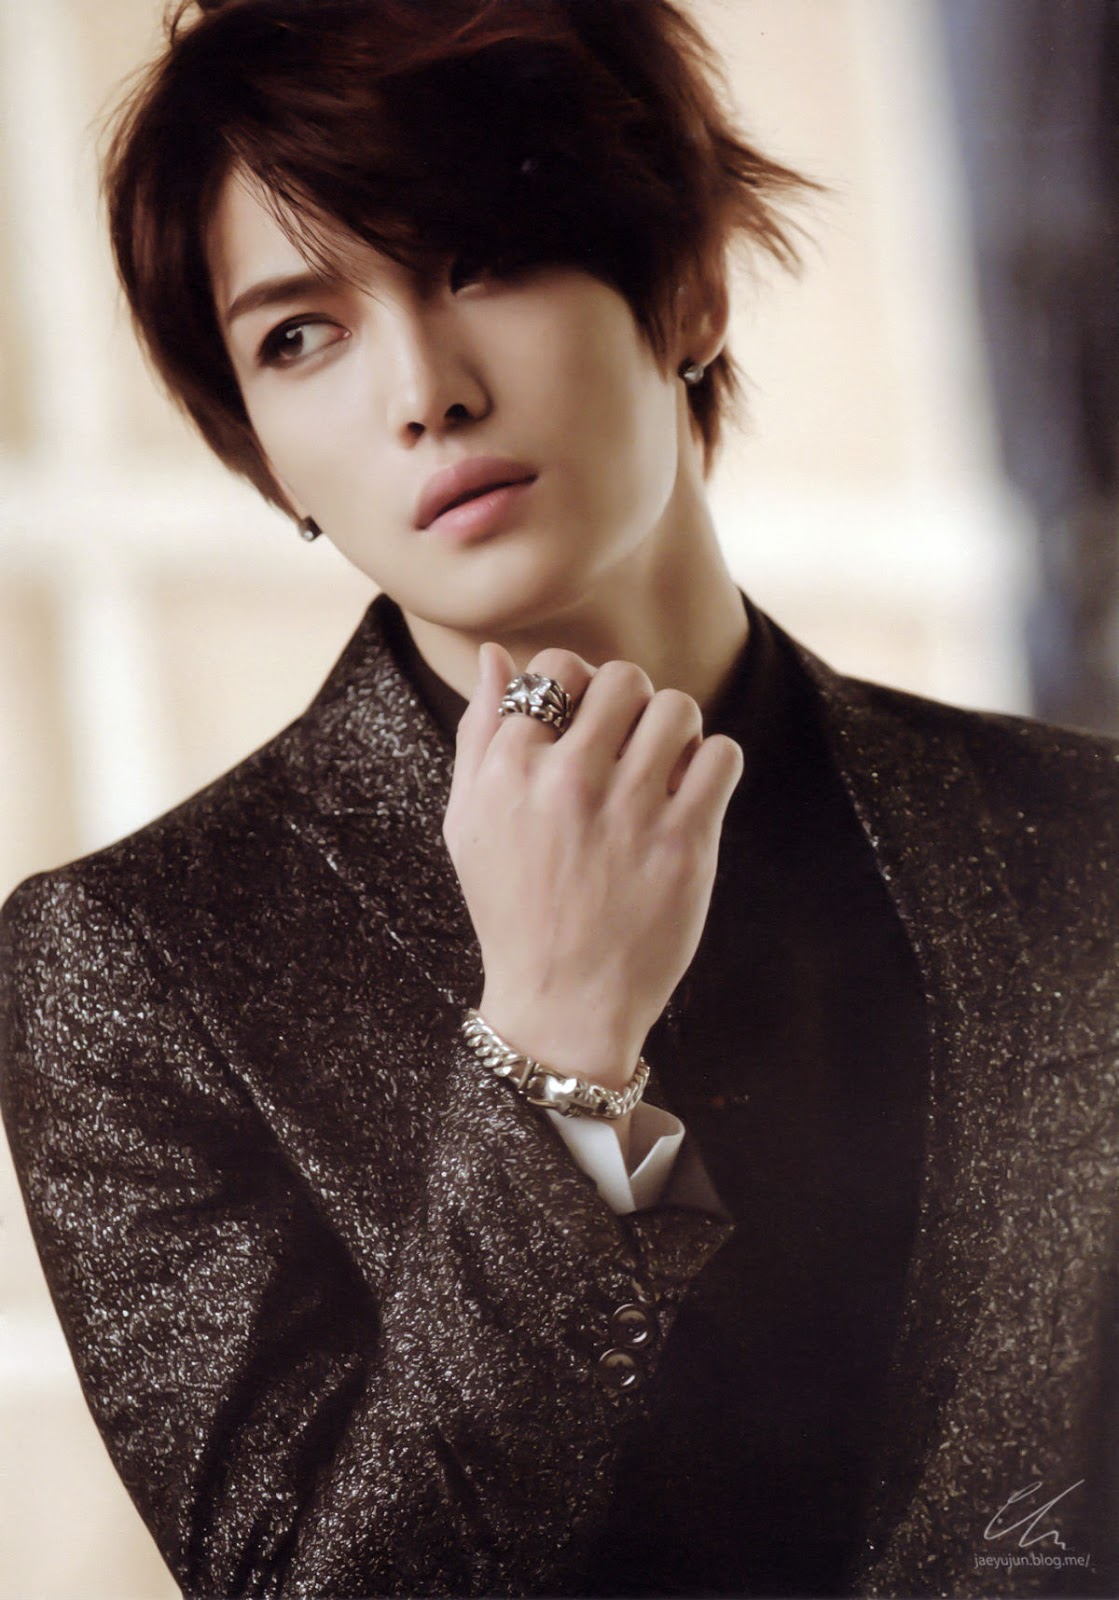 Sb March Madness And The Winner Is Kim Jaejoong Seoulbeats